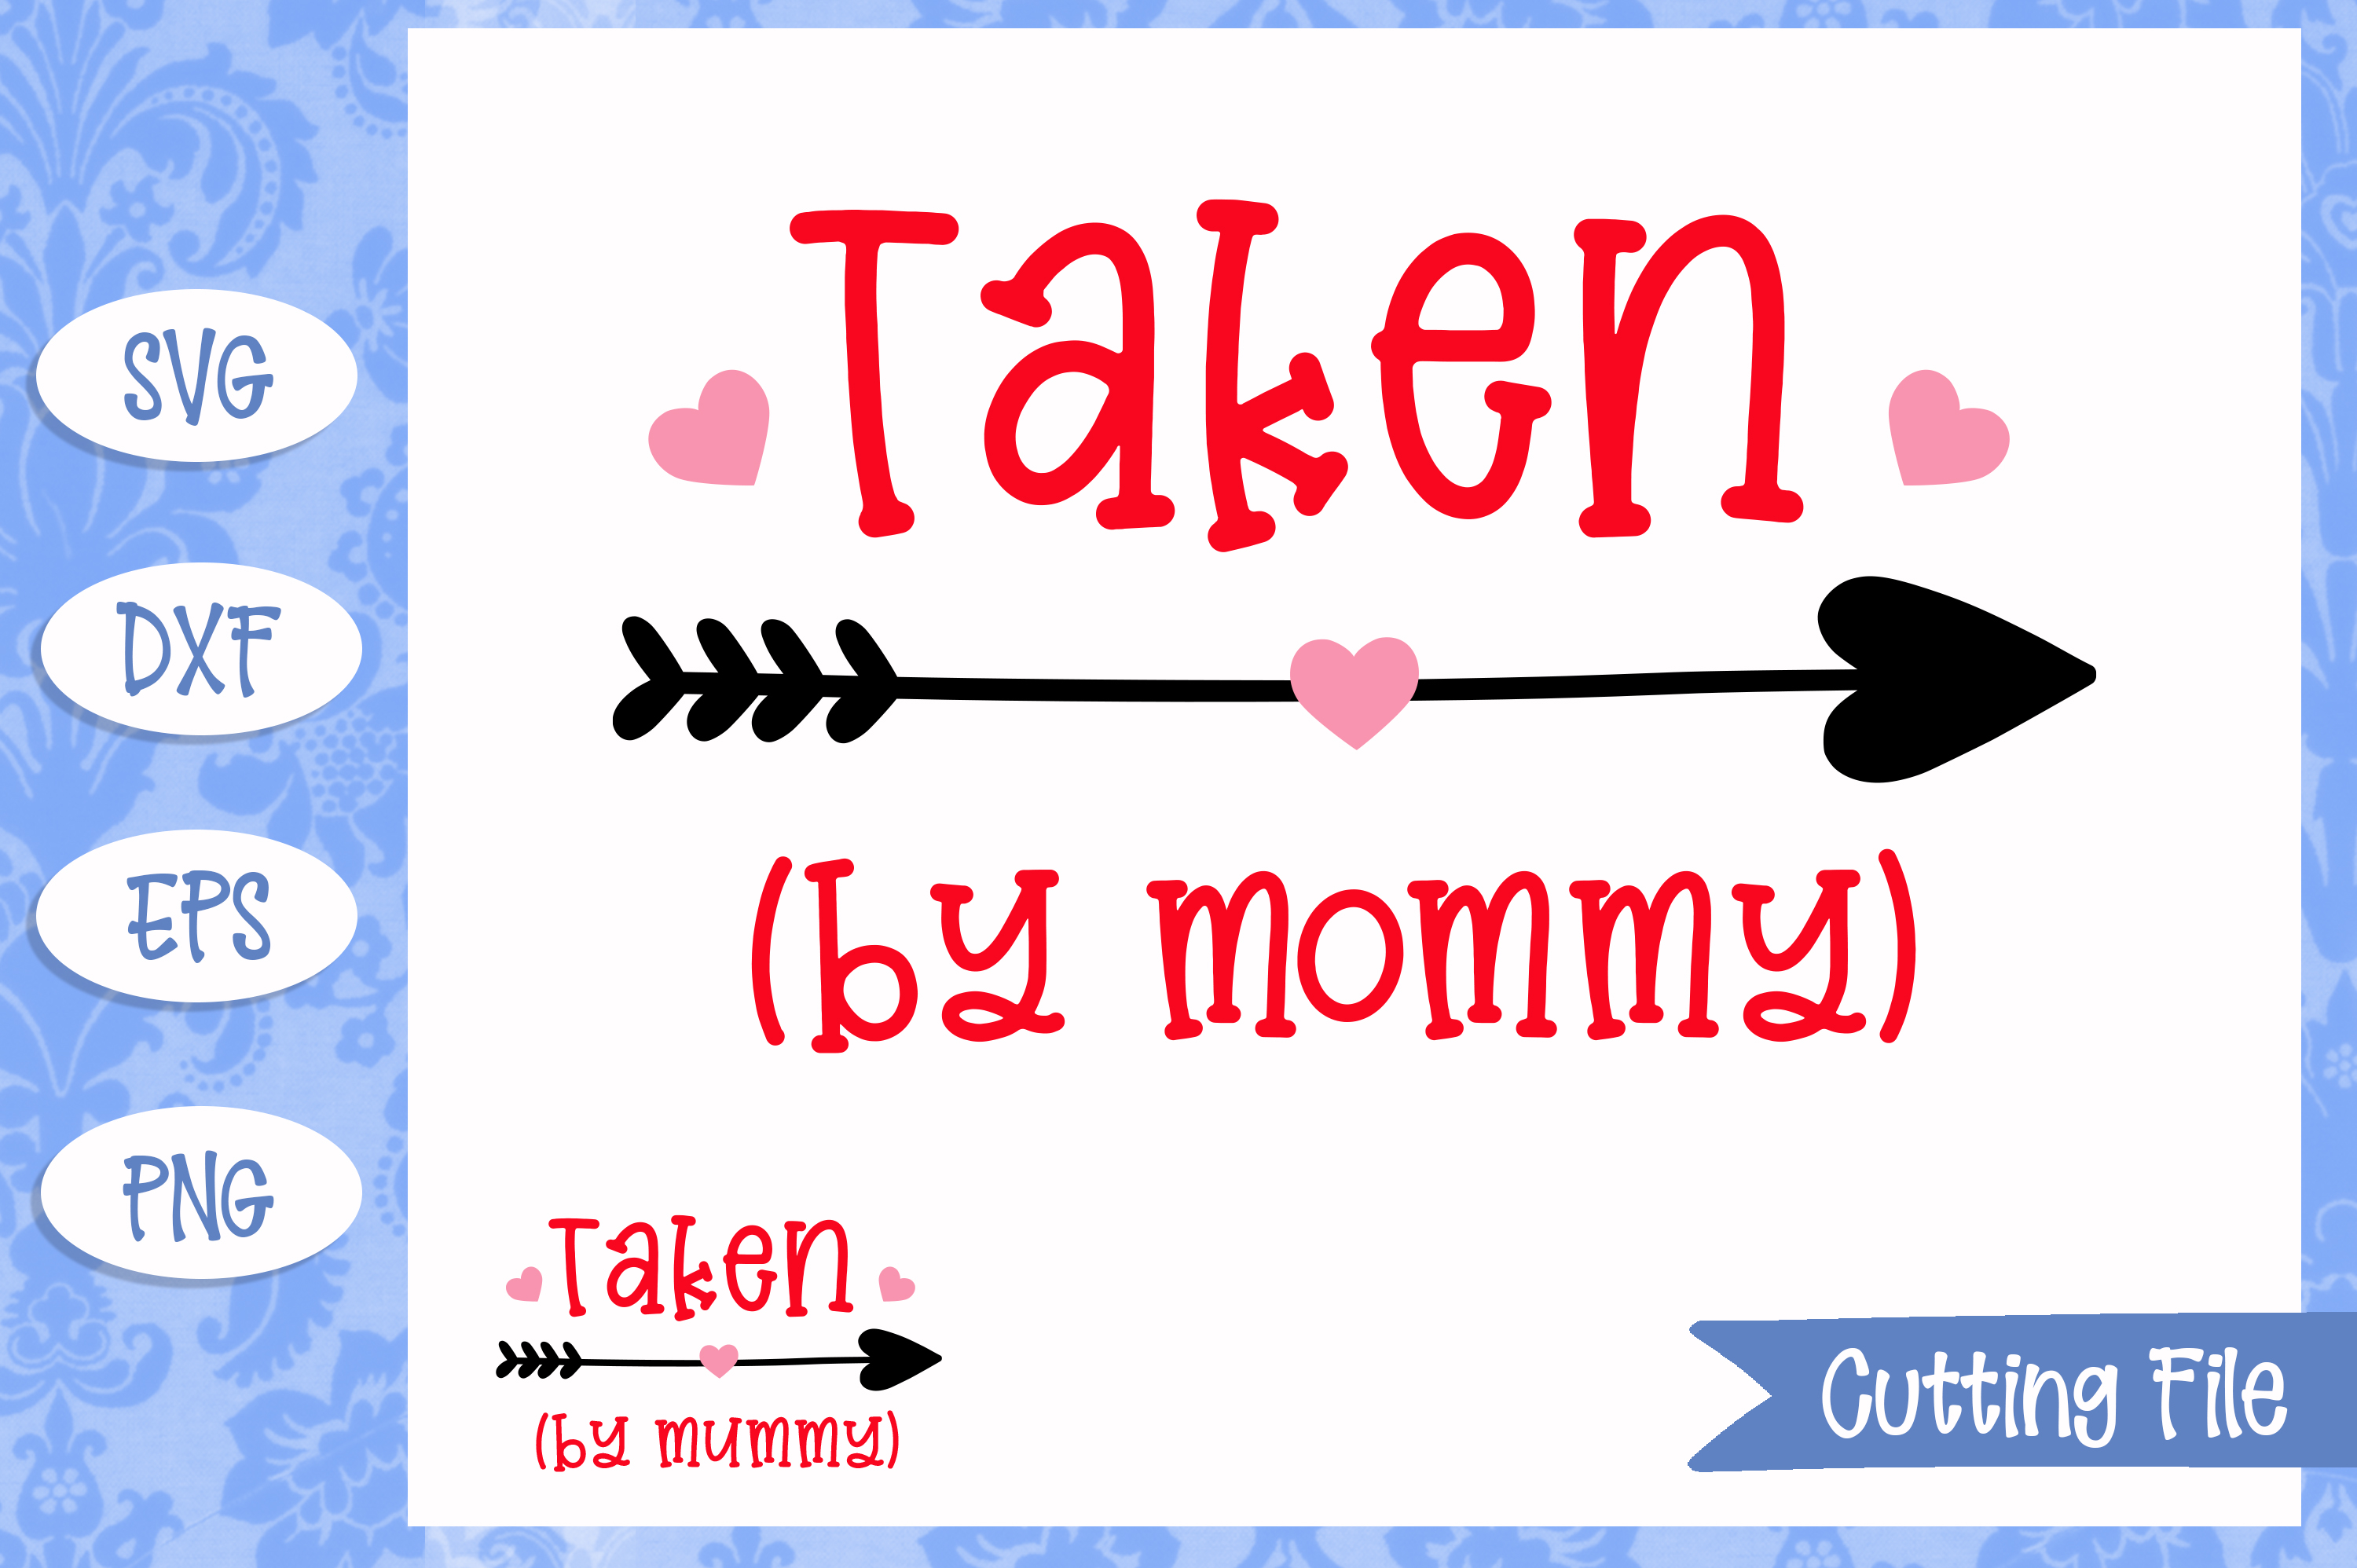 Taken by mommy SVG File example image 1